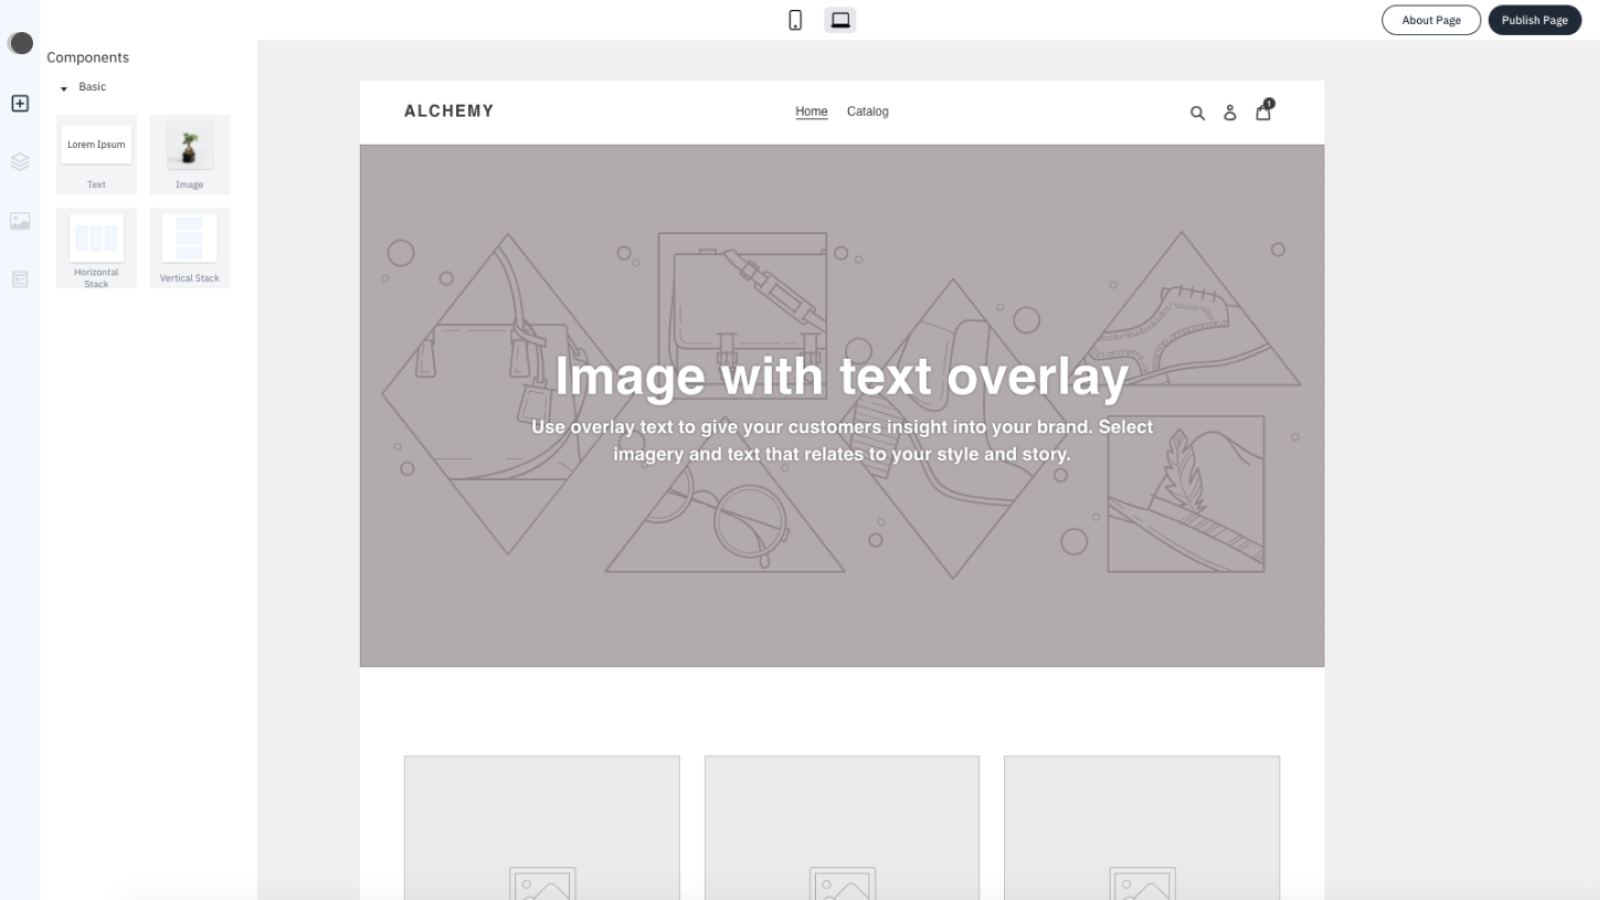 Visual editor lets you build your storefront without code